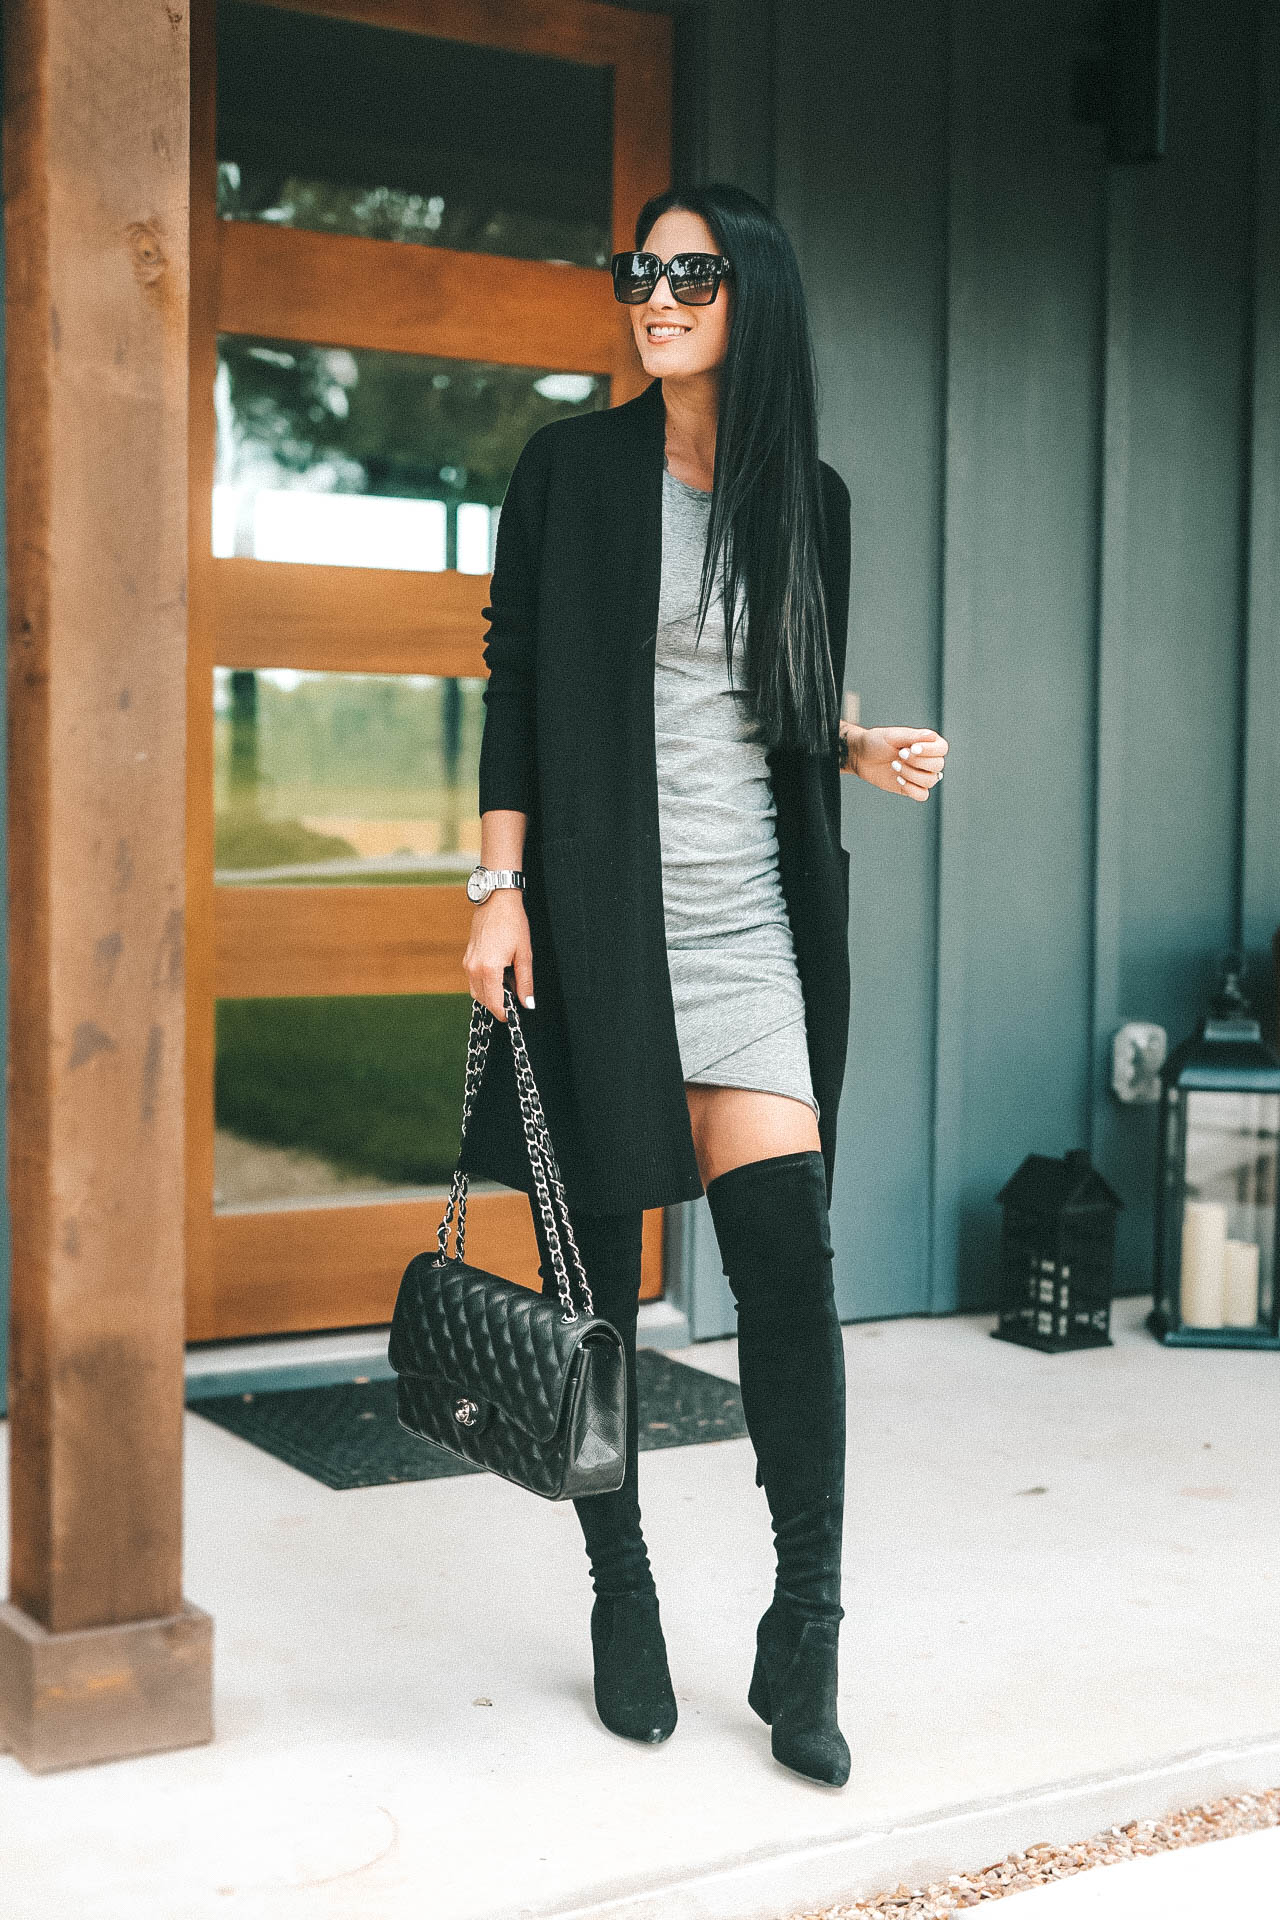 DTKAustin shares her must have cashmere from the NSALE Nordstrom Anniversary Sale. Starting with this Vince cashmere cardigan, Steve Madden OTK Over the Knee boots and Leith body-con dress. Must Have Cashmere Pieces | 2018 Nordstrom Anniversary Sale || Dressed to Kill #style #fashion #womensoutfit #cashmere #cashmeresweater #cashmerescarf #cashmerecardigan #dtkaustin - {Must Have Cashmere from the Nordstrom Anniversary Sale + Giveaway} featured by popular Austin fashion blogger Dressed to Kill